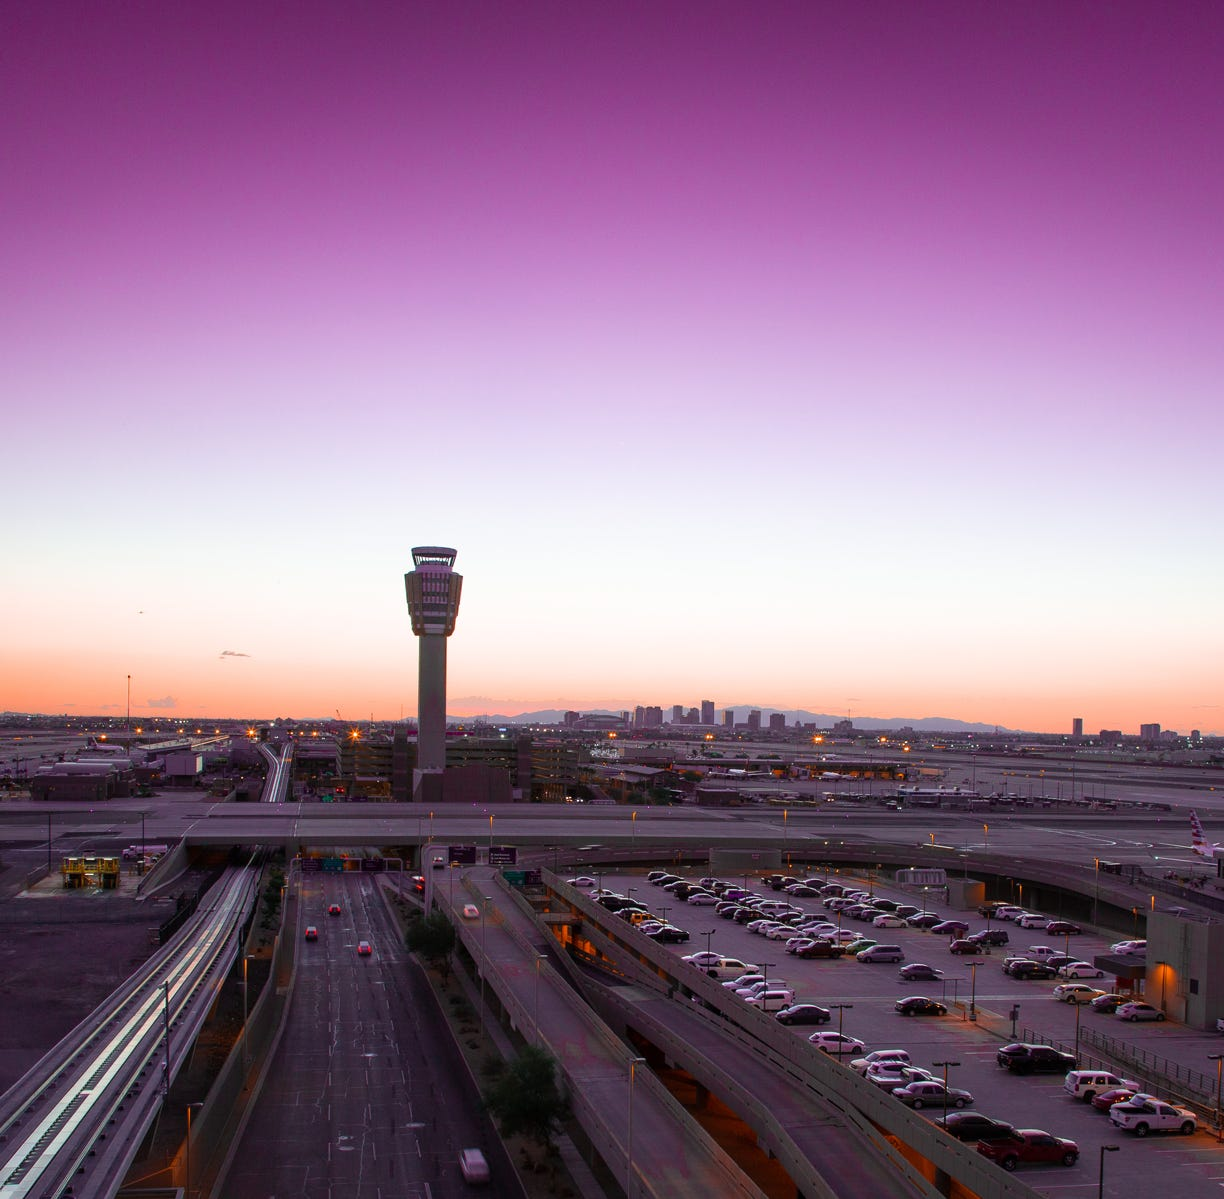 What U.S. airport has the best shopping? Phoenix, according to travelers